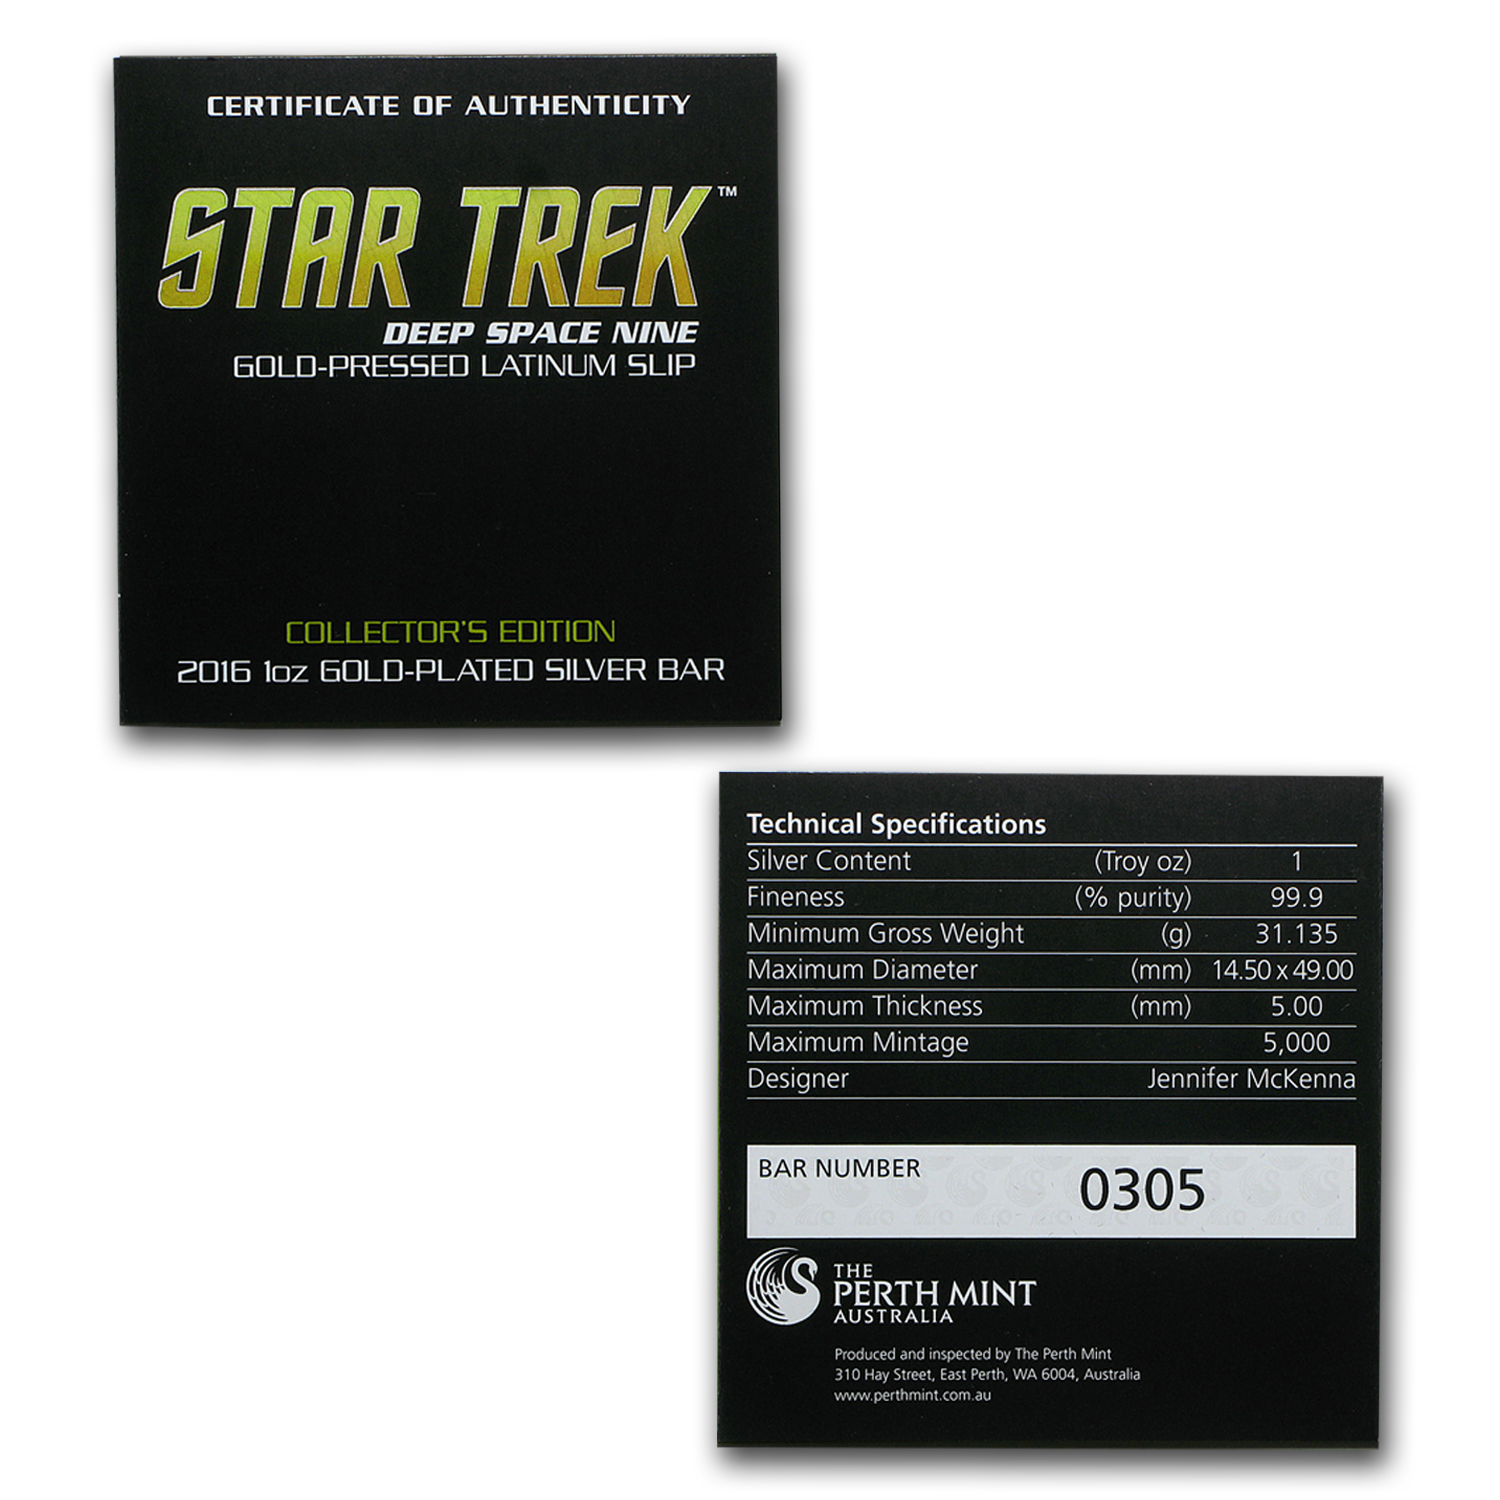 2016 Australia 1 oz Silver Bar Star Trek Latinum Slip